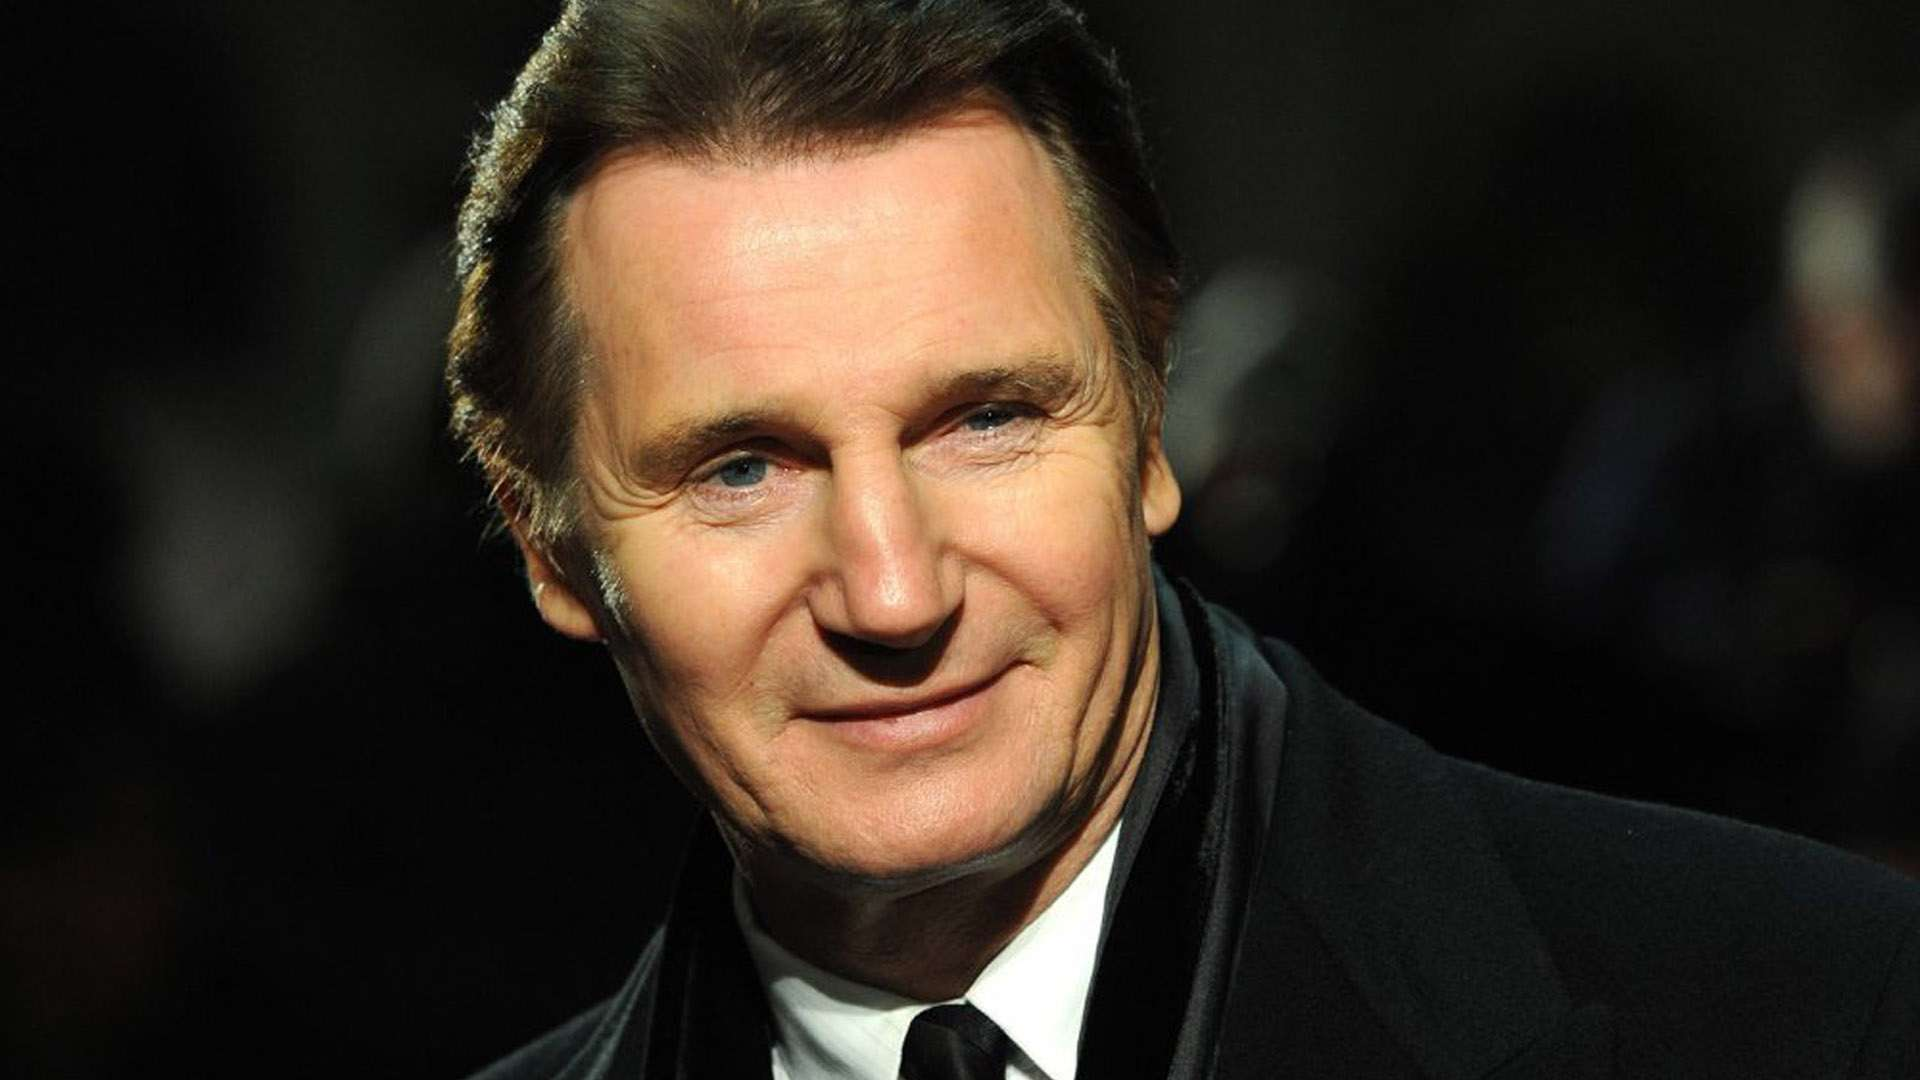 Liam Neeson Royal Film Performance 2010: The Chronicles Of Narnia: The Voyage Of The Dawn Treader held at the Odeon and Empire Cinemas on Leicester Square. London, England - 30.11.10 Credit: (Mandatory): WENN.com